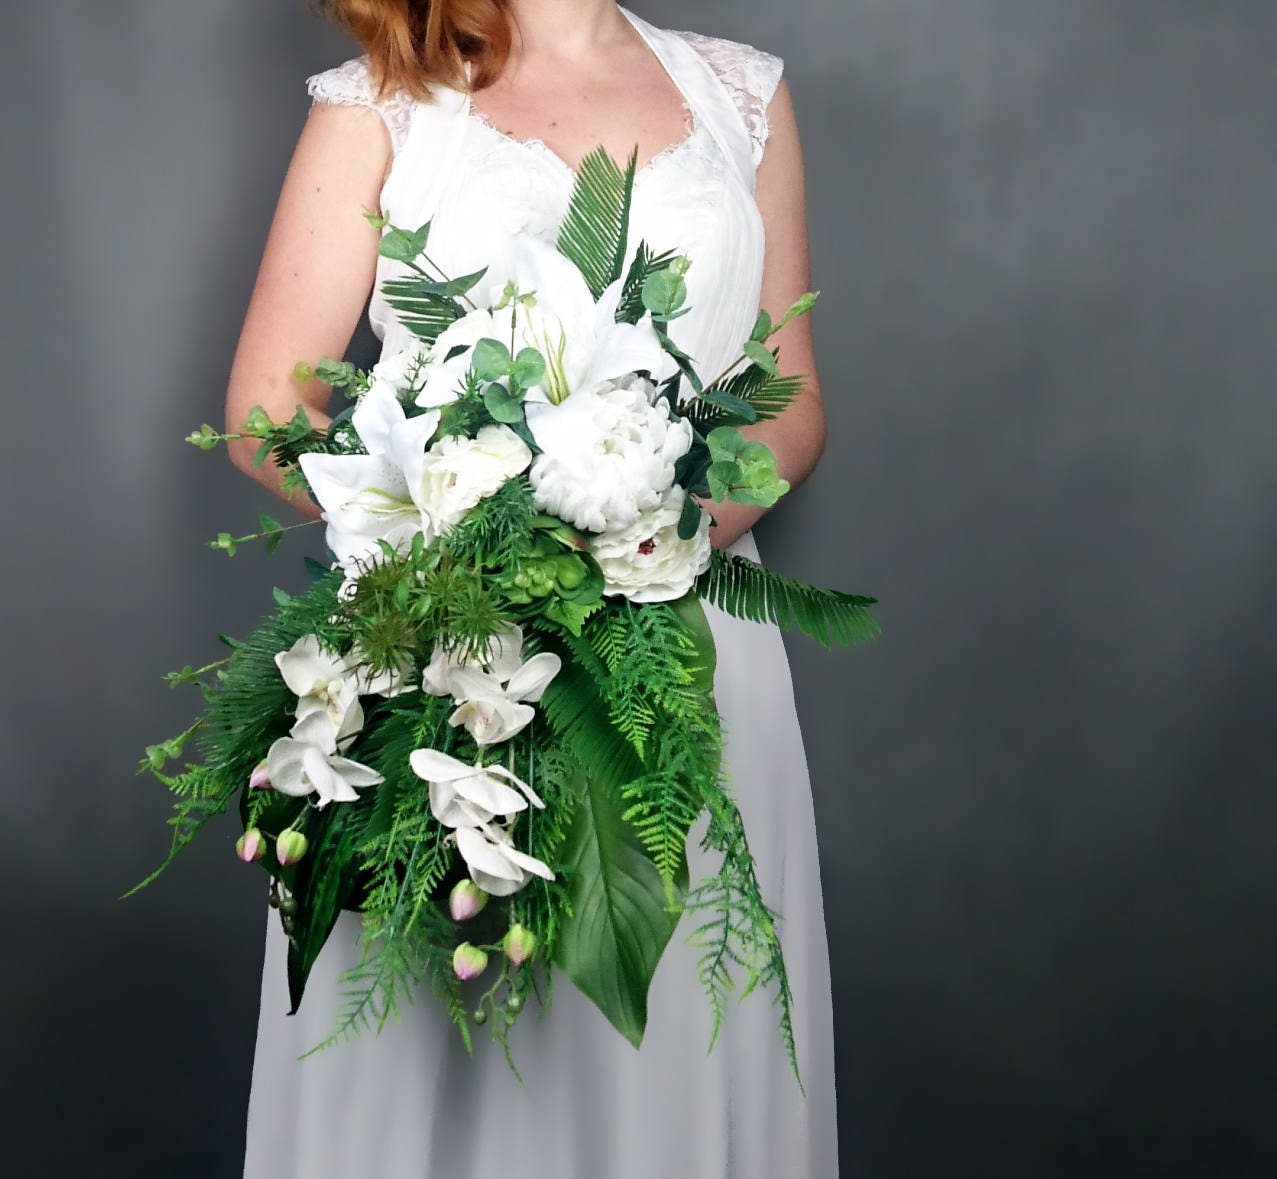 White wedding bouquet tropical greenery leafs orchid lily flowers ...